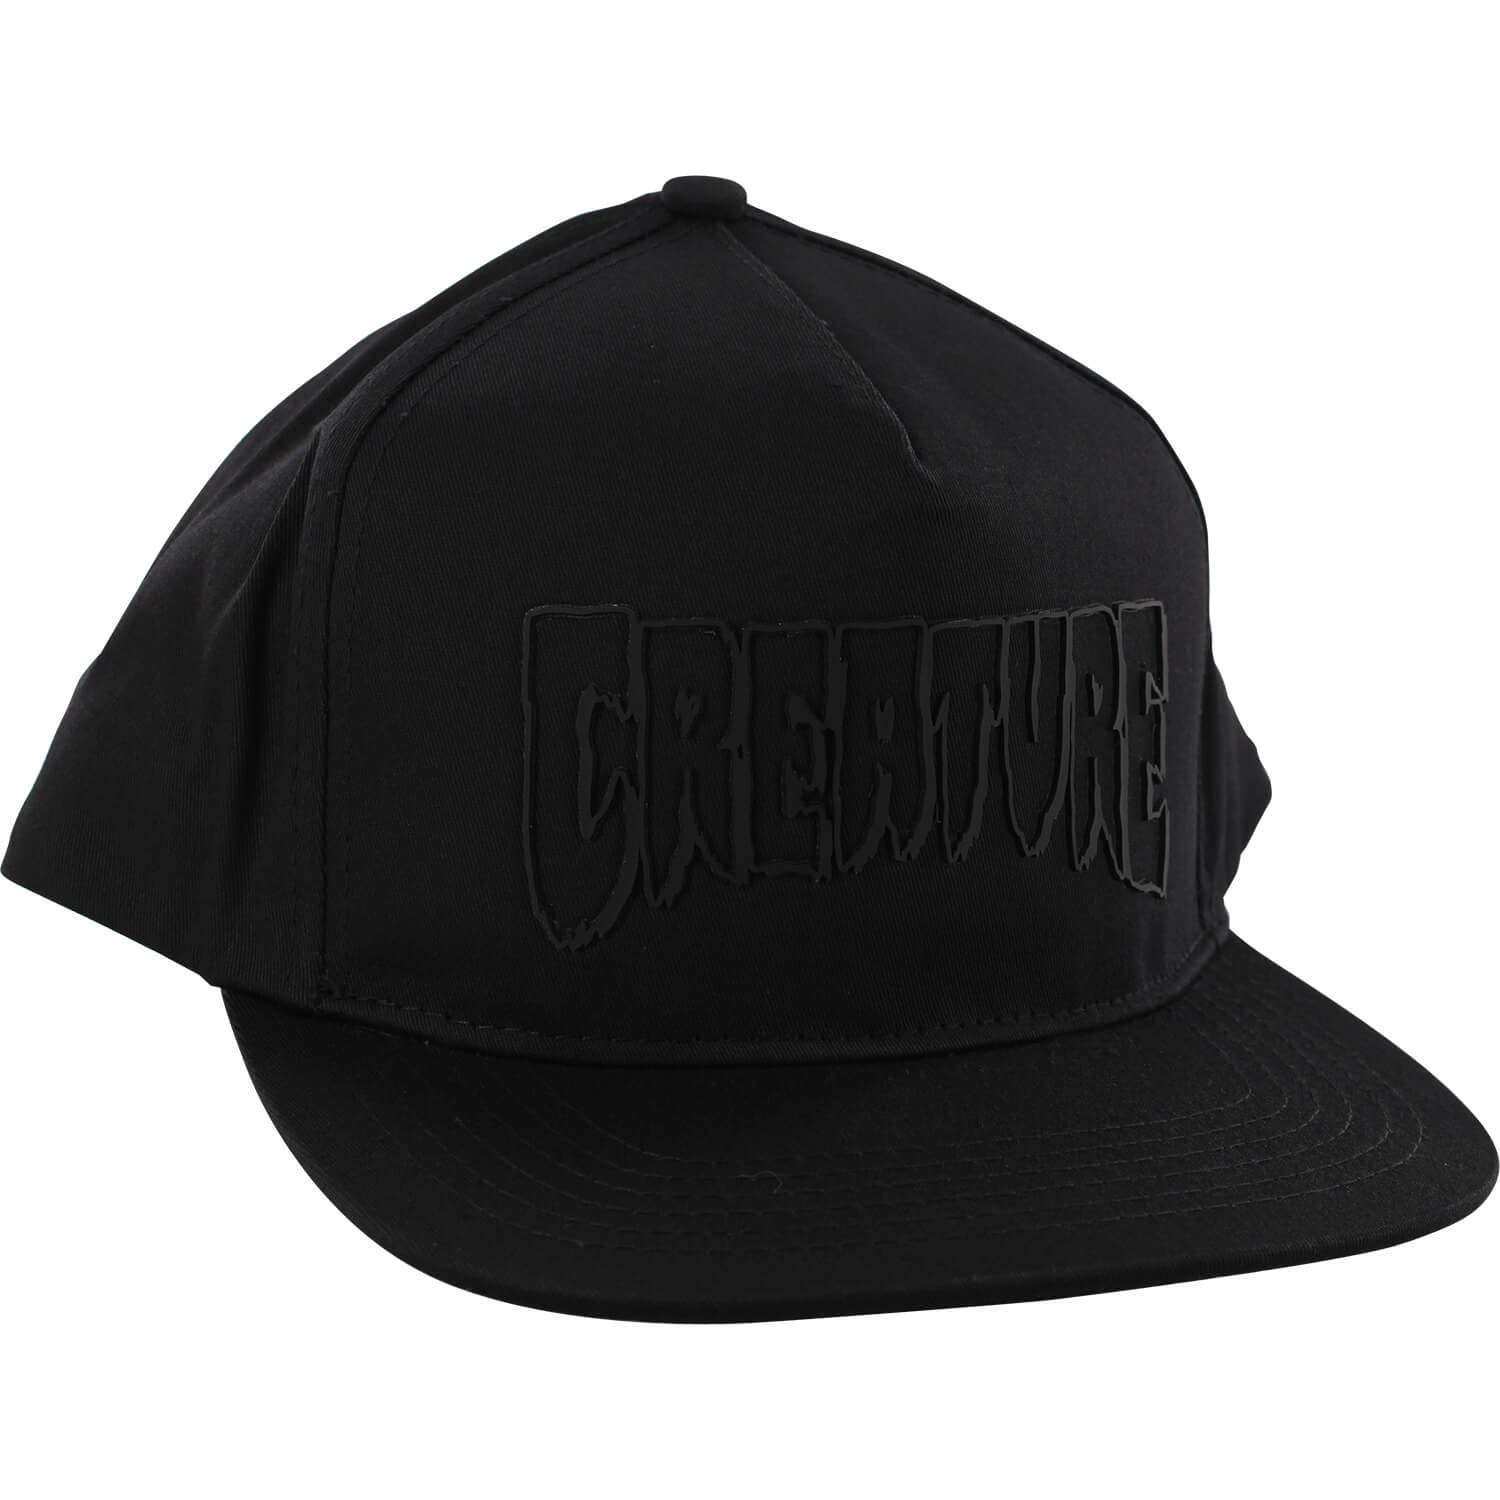 36d105a32f2 Amazon.com  Creature Skateboards Logo Weld Black Snapback Hat - Adjustable   Sports   Outdoors